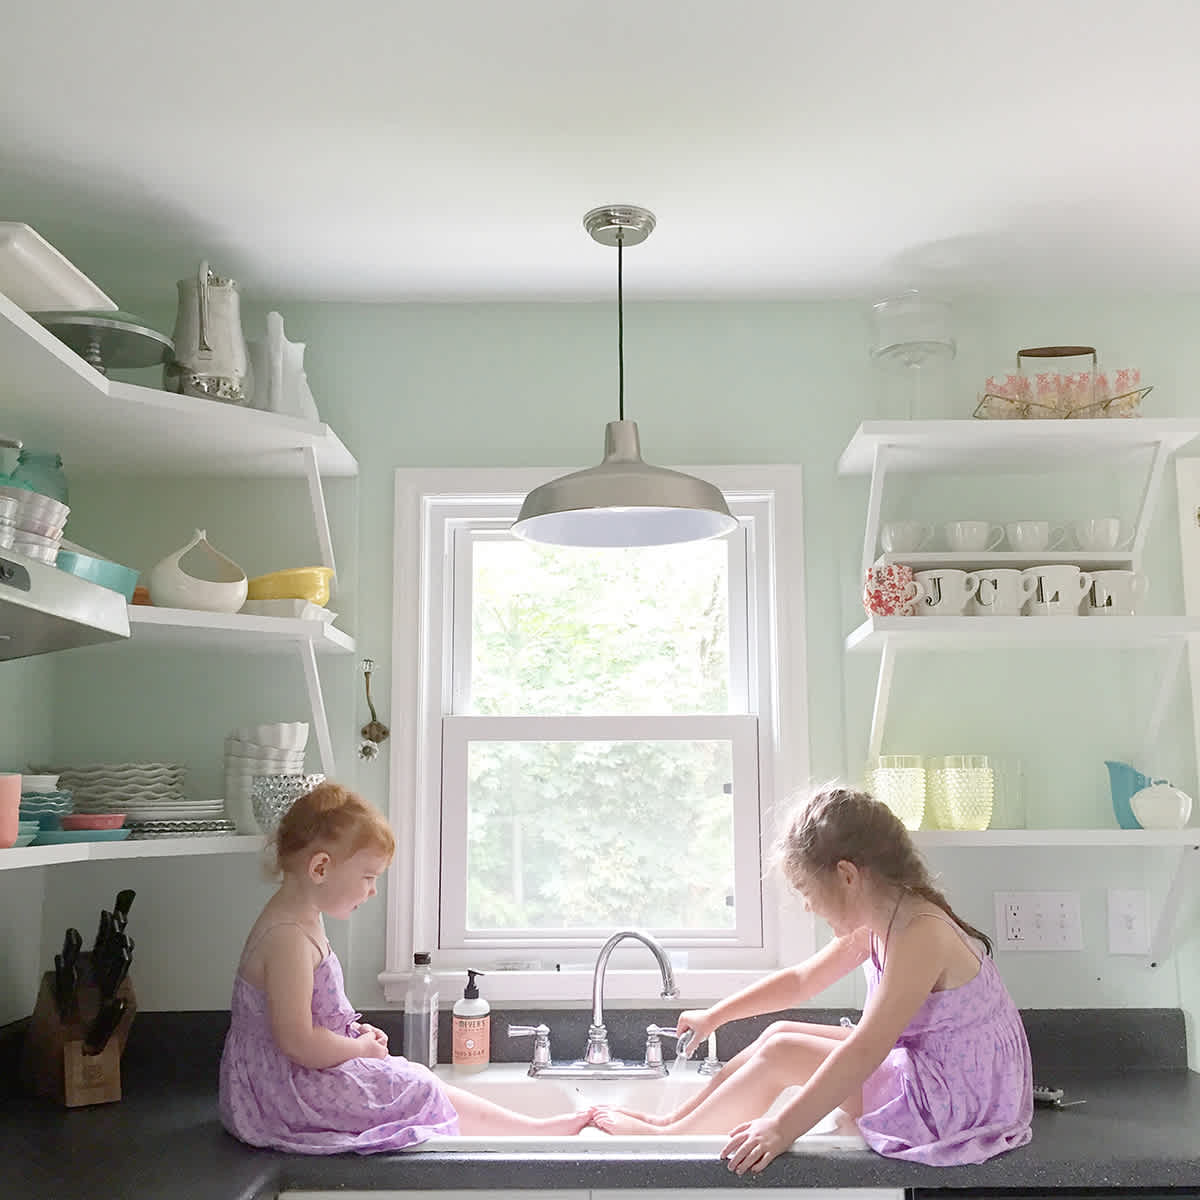 A Kitchen Renovation With The Home Depot - Lay Baby Lay